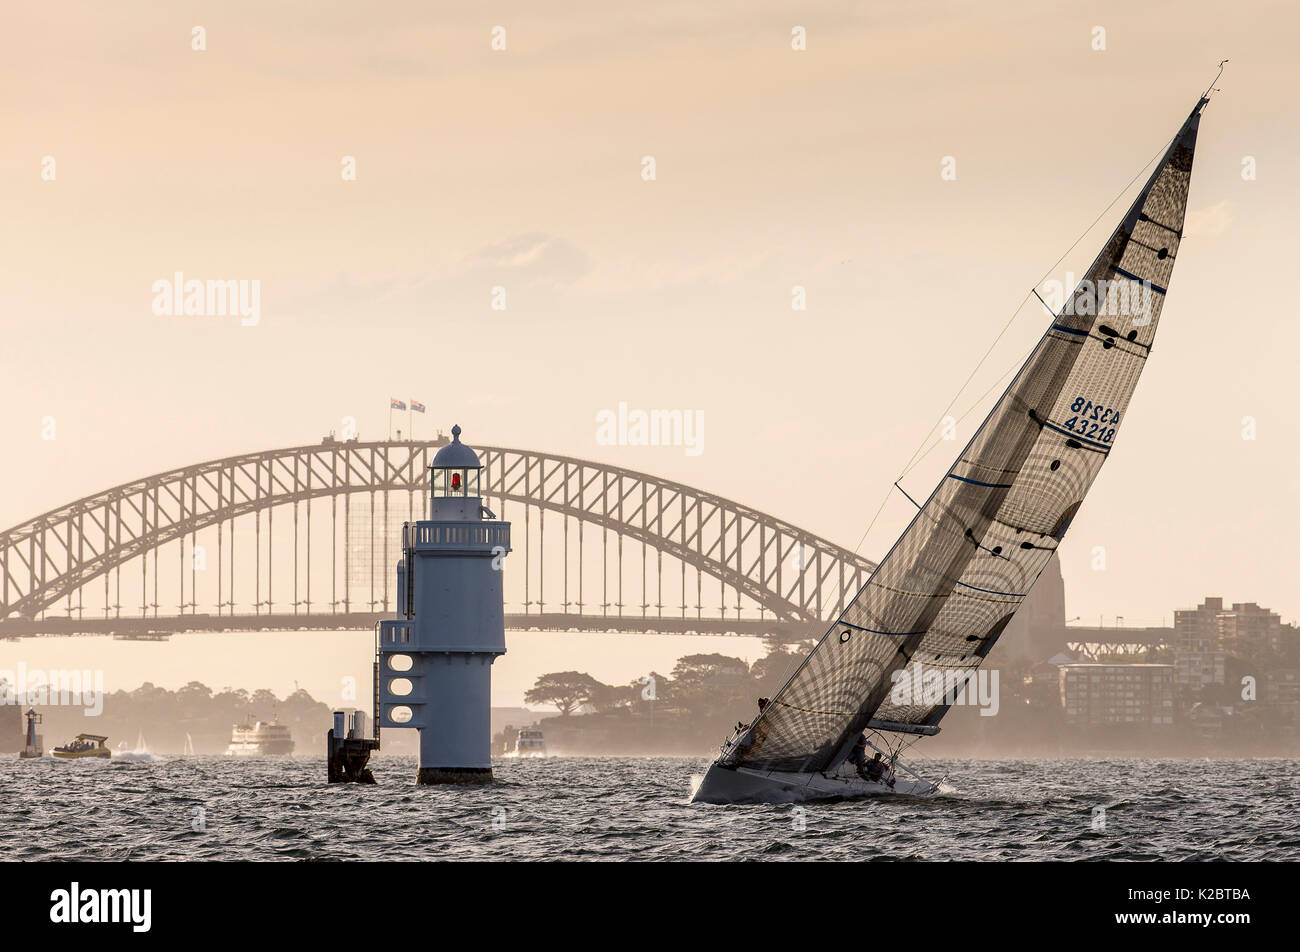 Yacht sailing past a lighthouse in front of the Harbour Bridge in Sydney, New South Wales, Australia, November 2012. All non-editorial uses must be cleared individually. - Stock Image